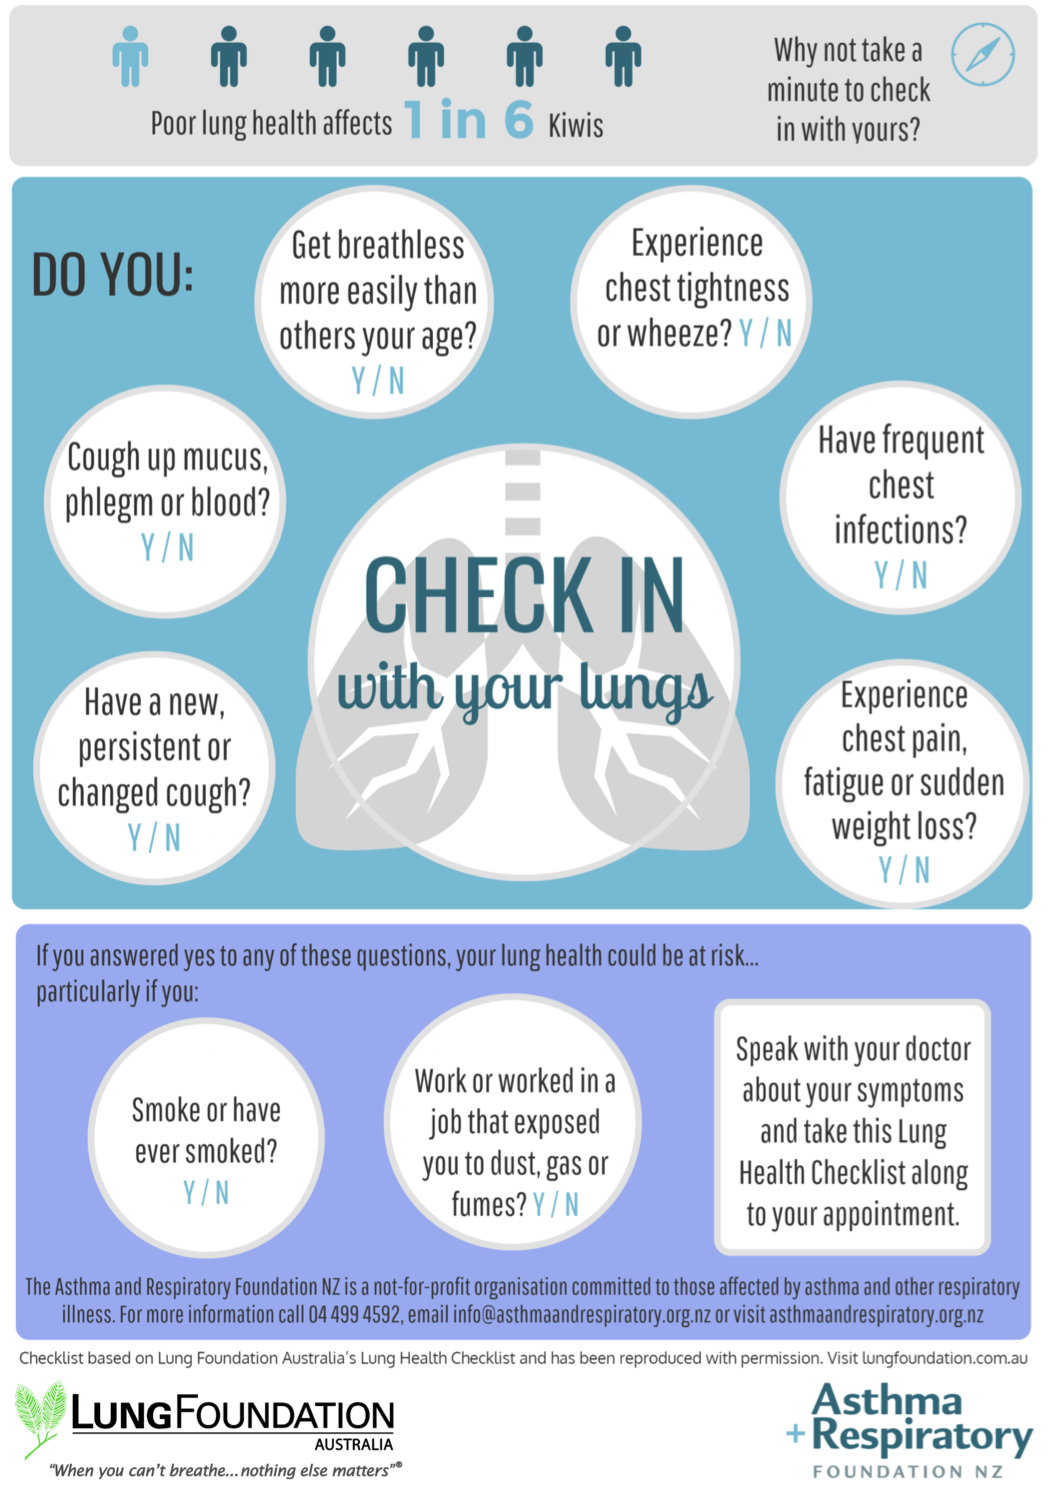 Check in with your lungs